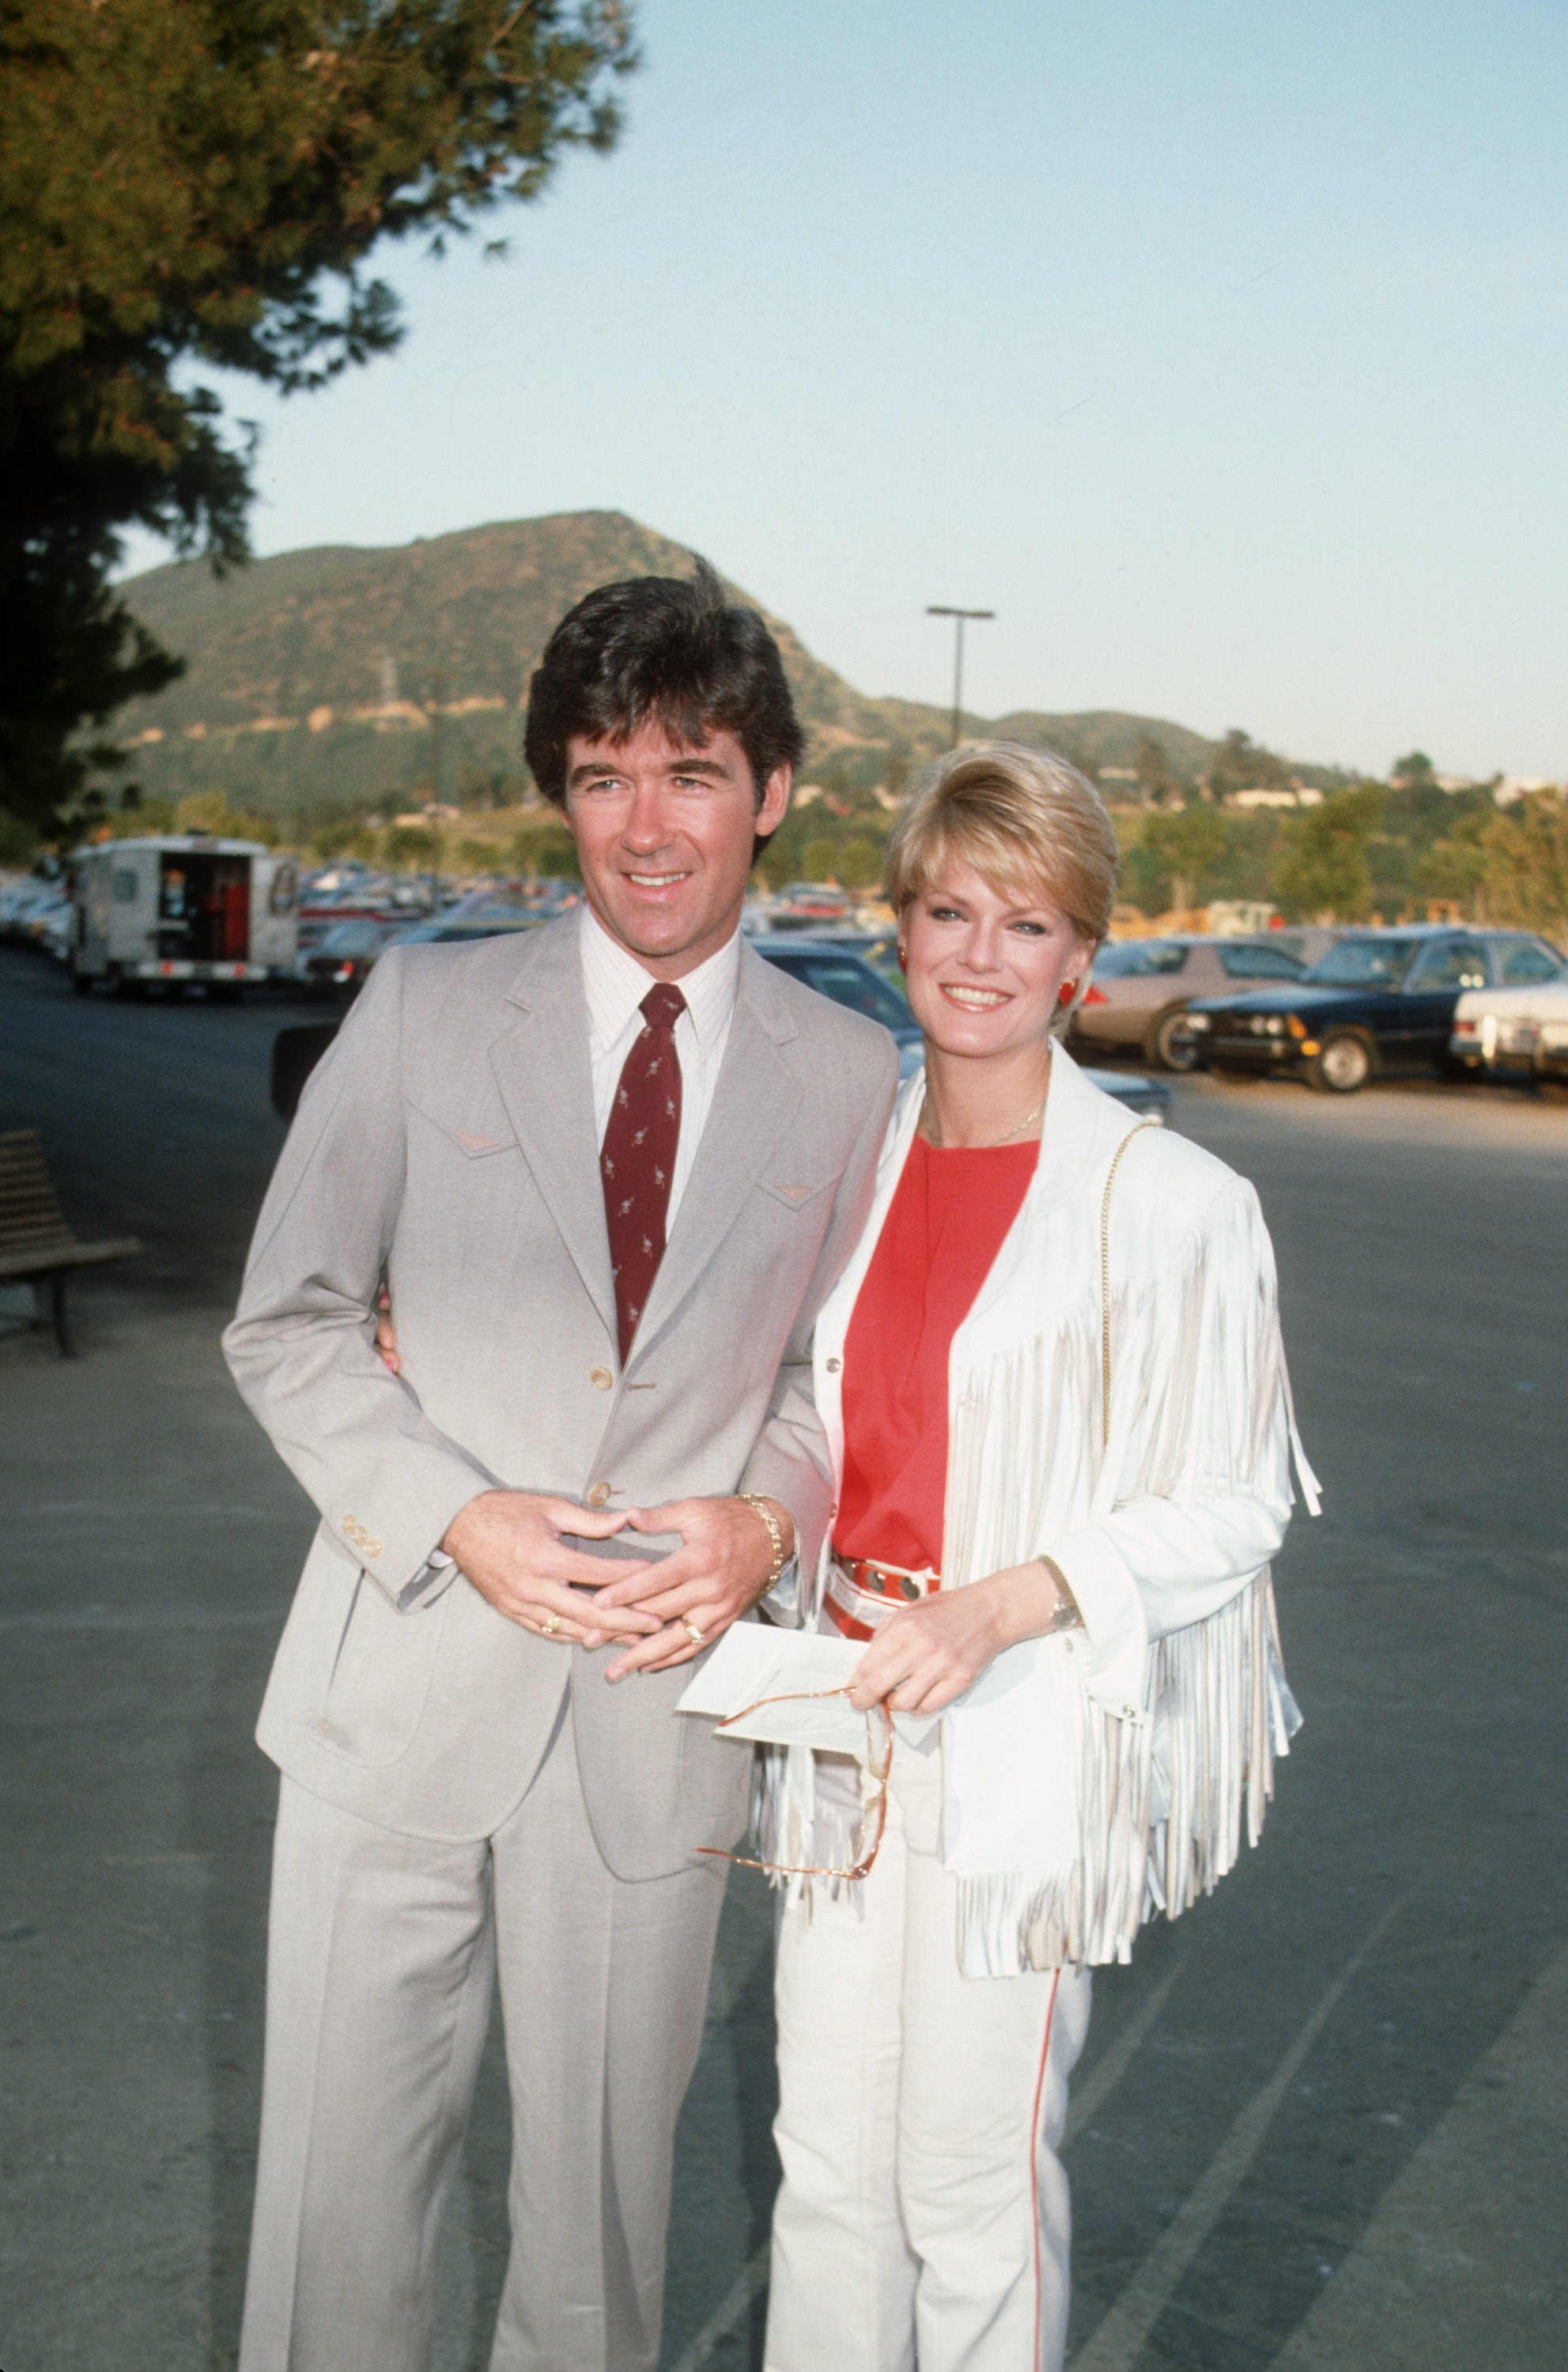 Alan Thicke Gloria Loring attending 'Share Boomtown Party, May 1983 | Source: Getty Images